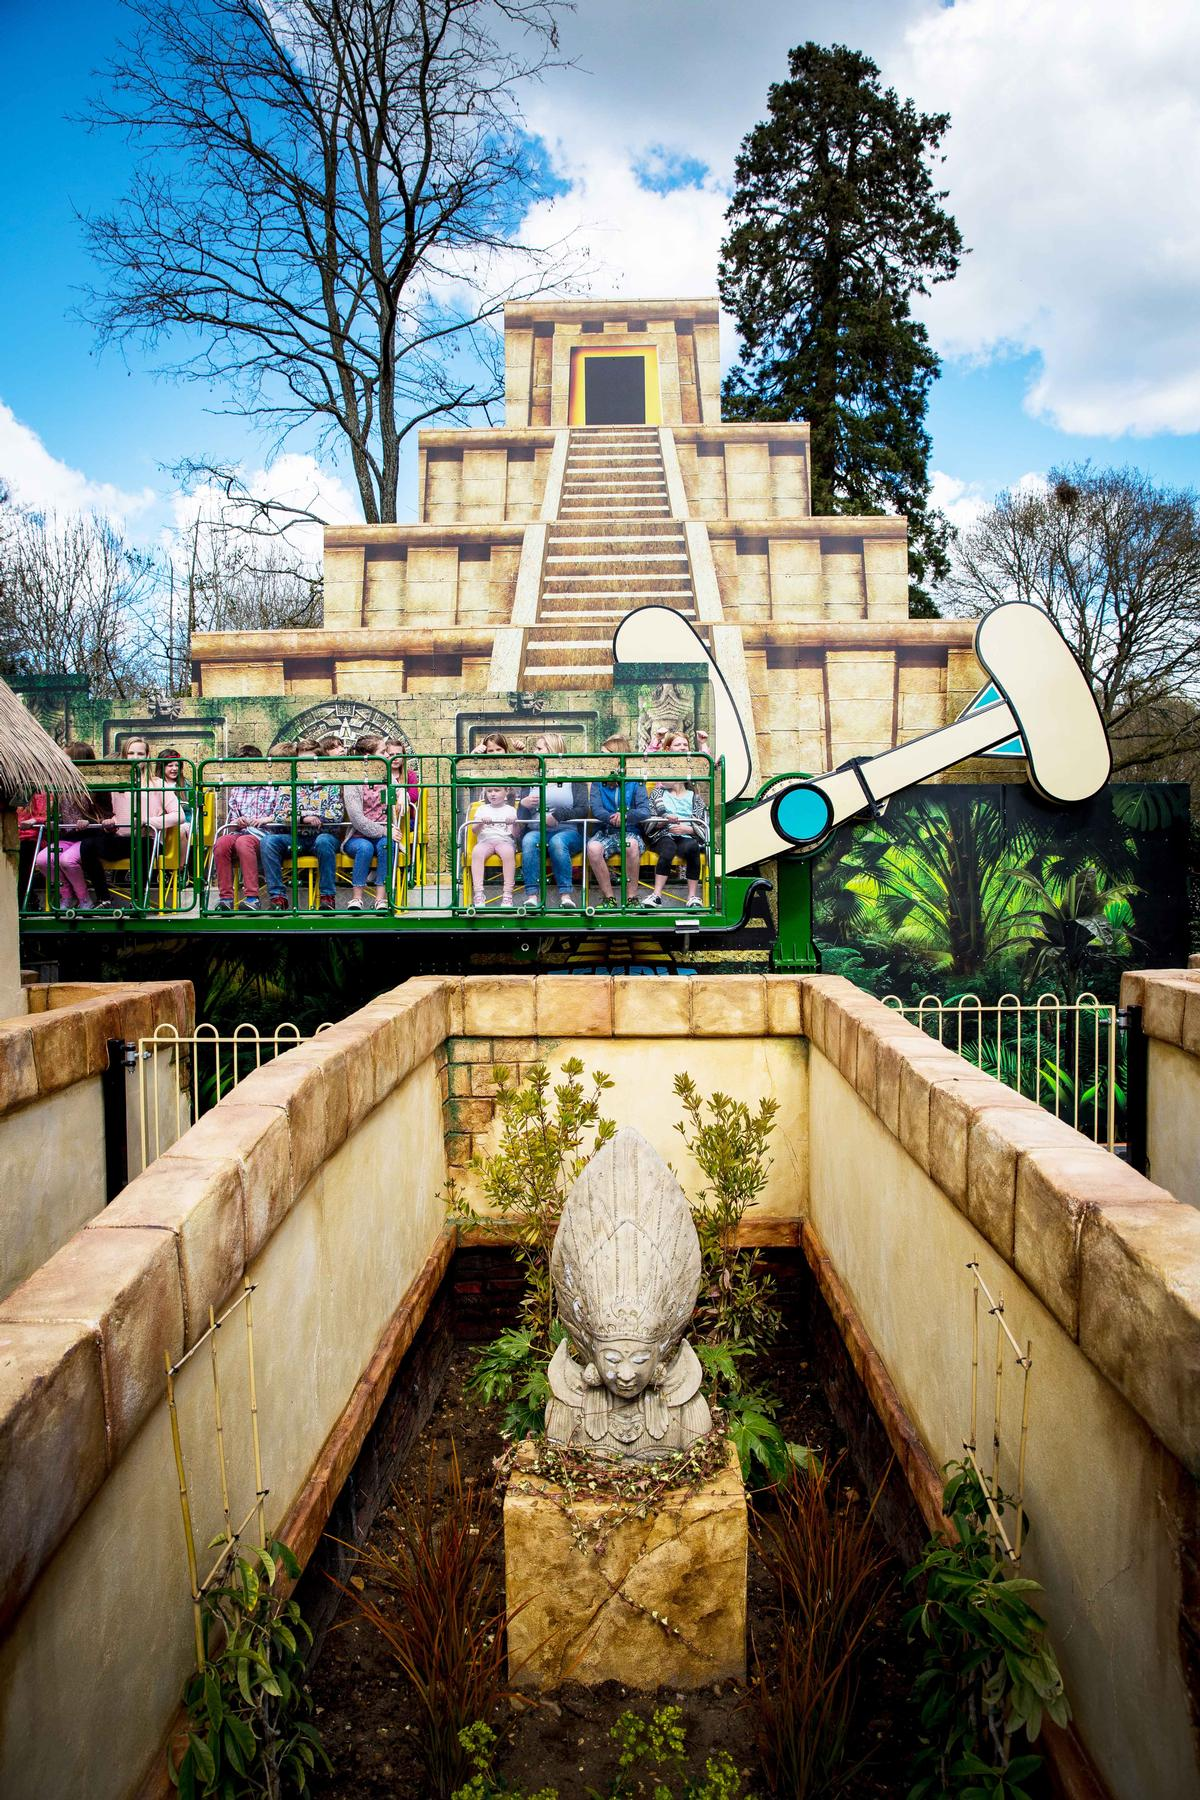 Zamperla designed the Temple Heights attraction